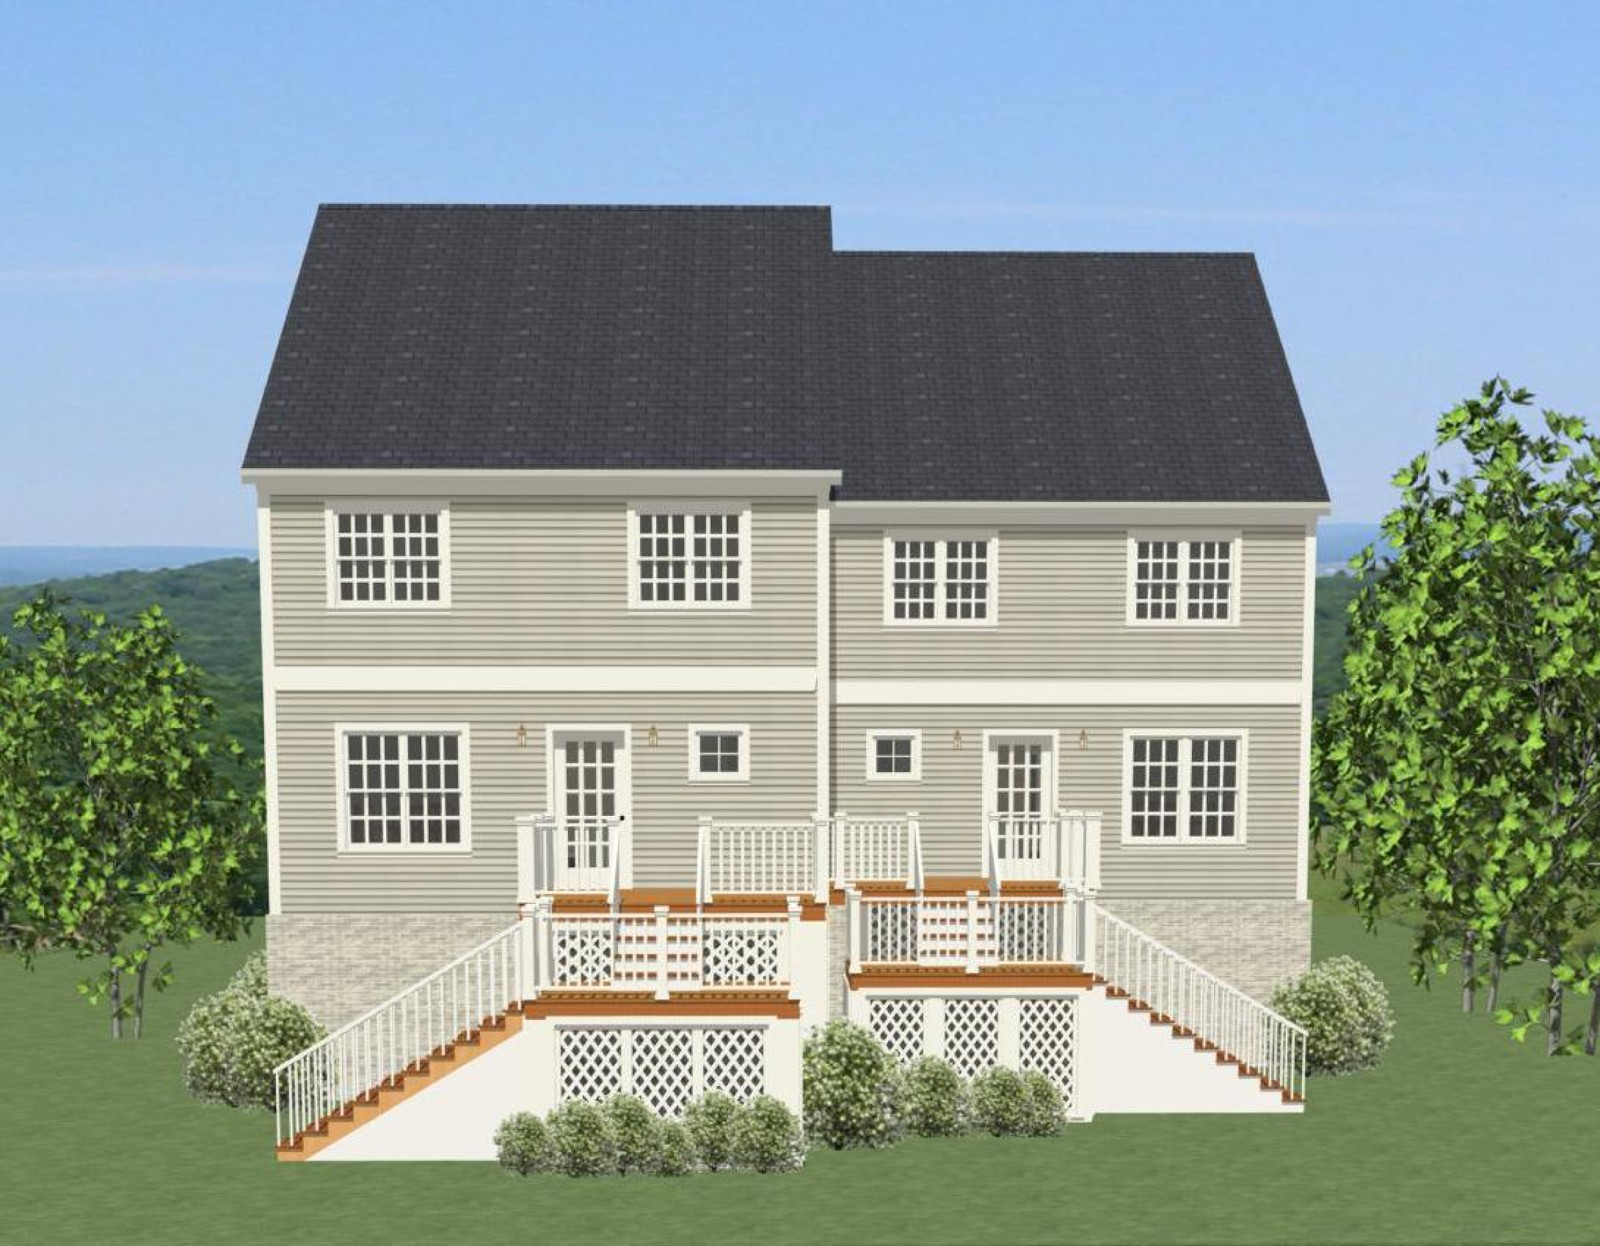 Offset duplex house plan with rear decks 46272la 2nd for House plans with offset garage